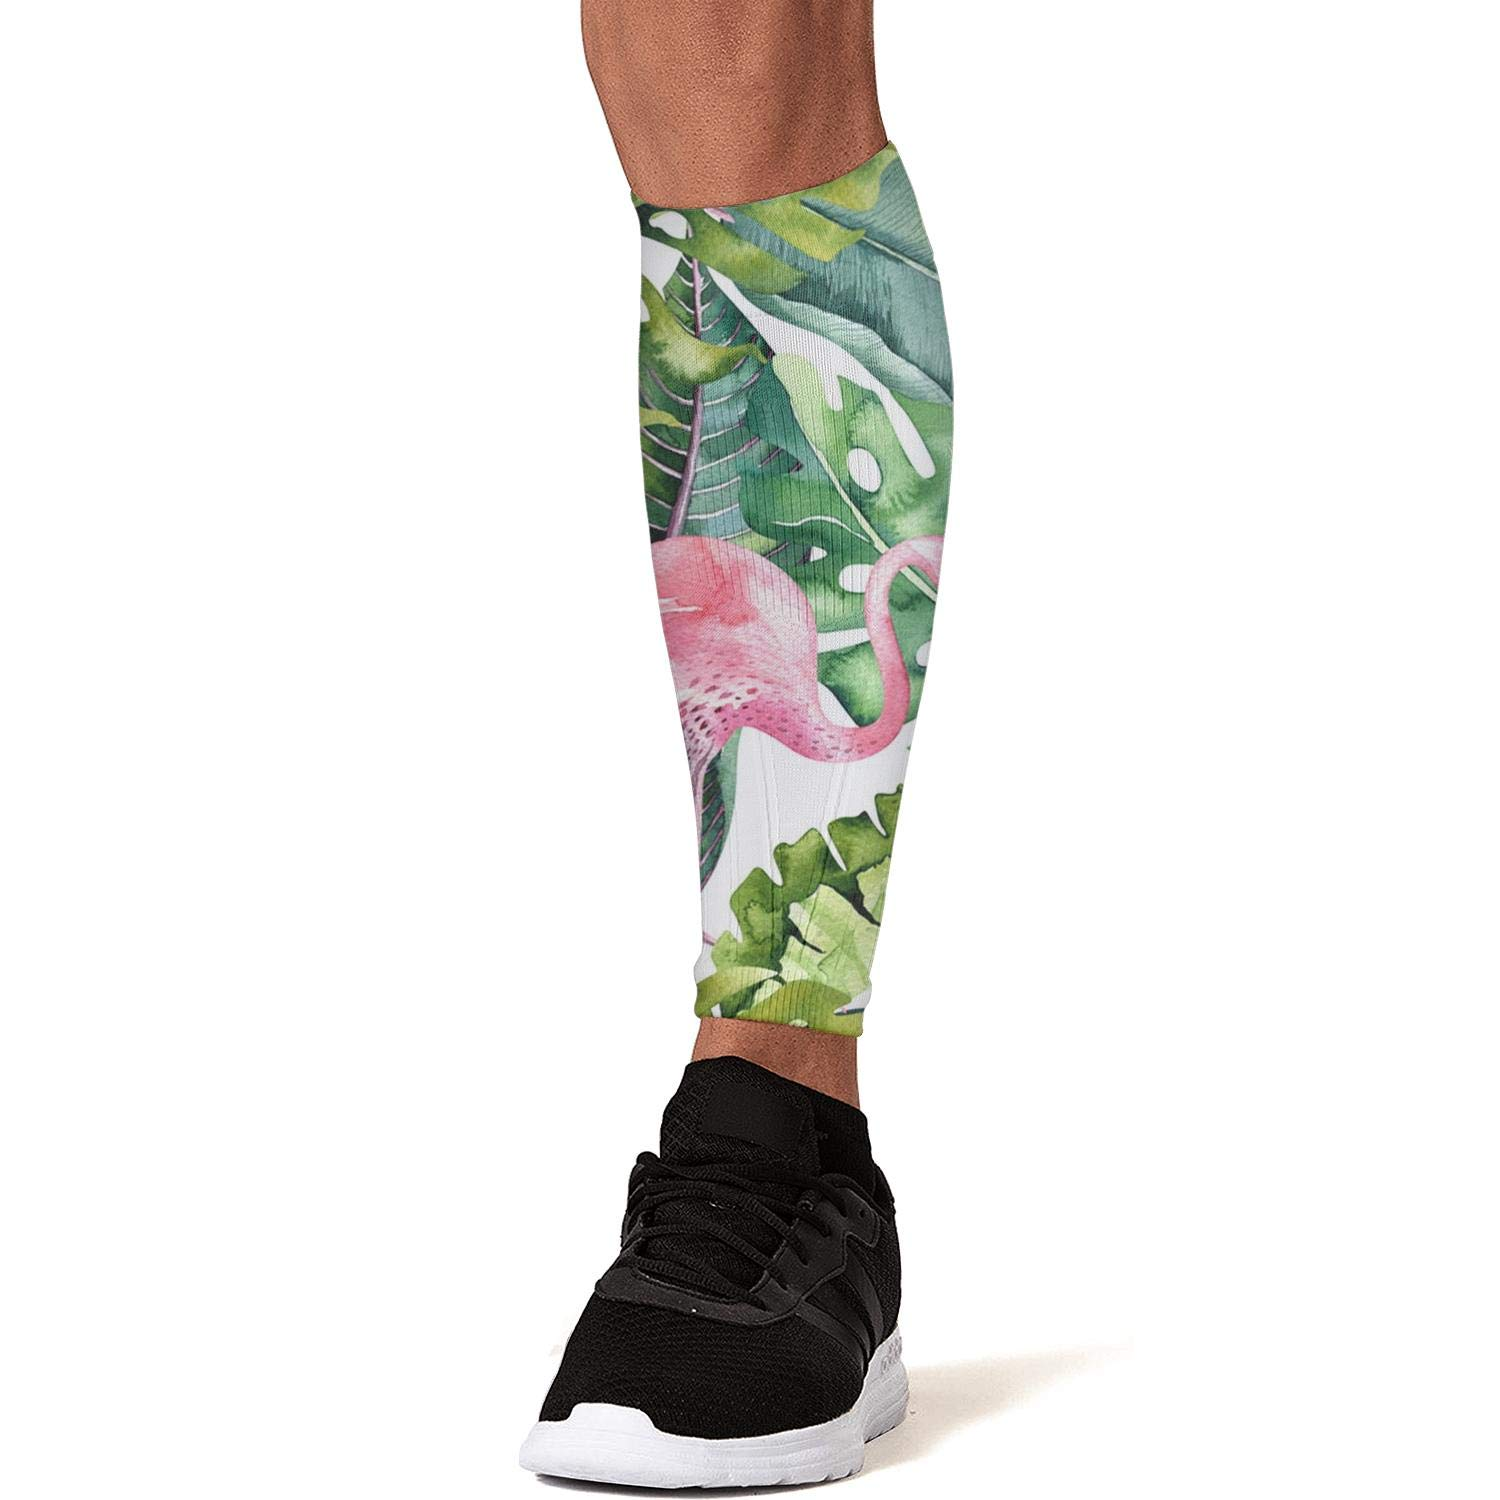 Smilelolly Flamingo Tropical Banana Palm Leaf Calf Compression Sleeves Helps Faster Recovery Leg Sleeves for Men Women